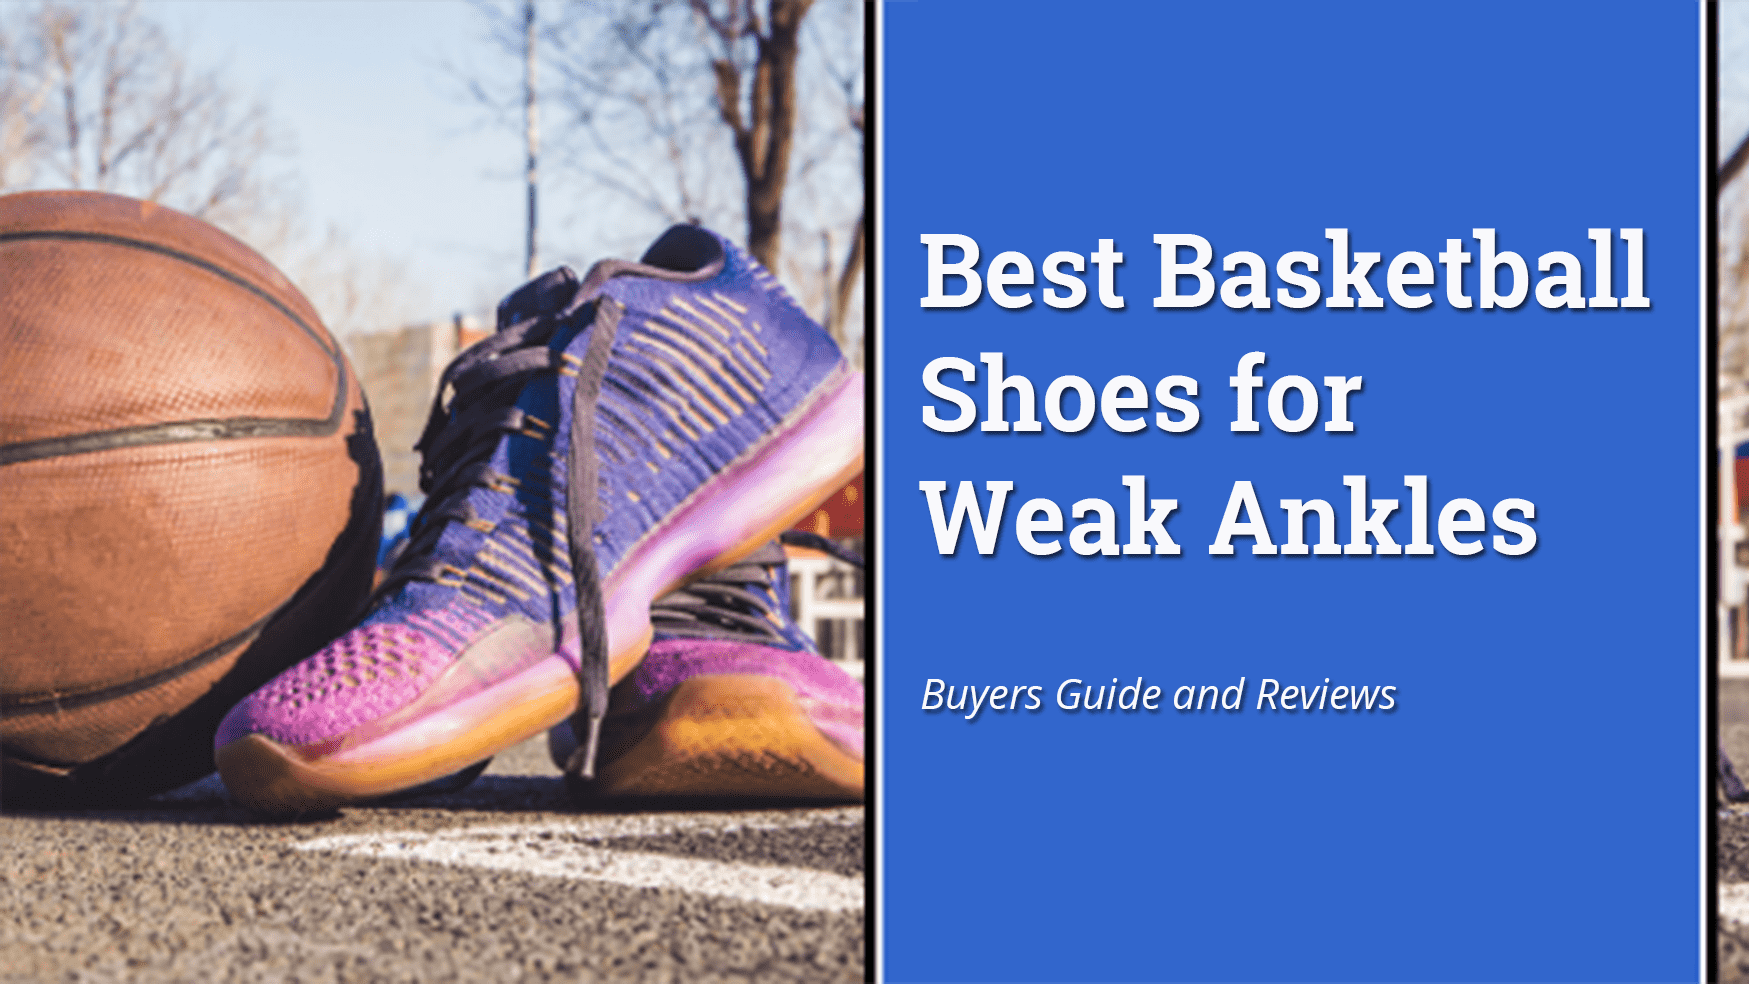 best-basketball-sheos-for-weak-ankles